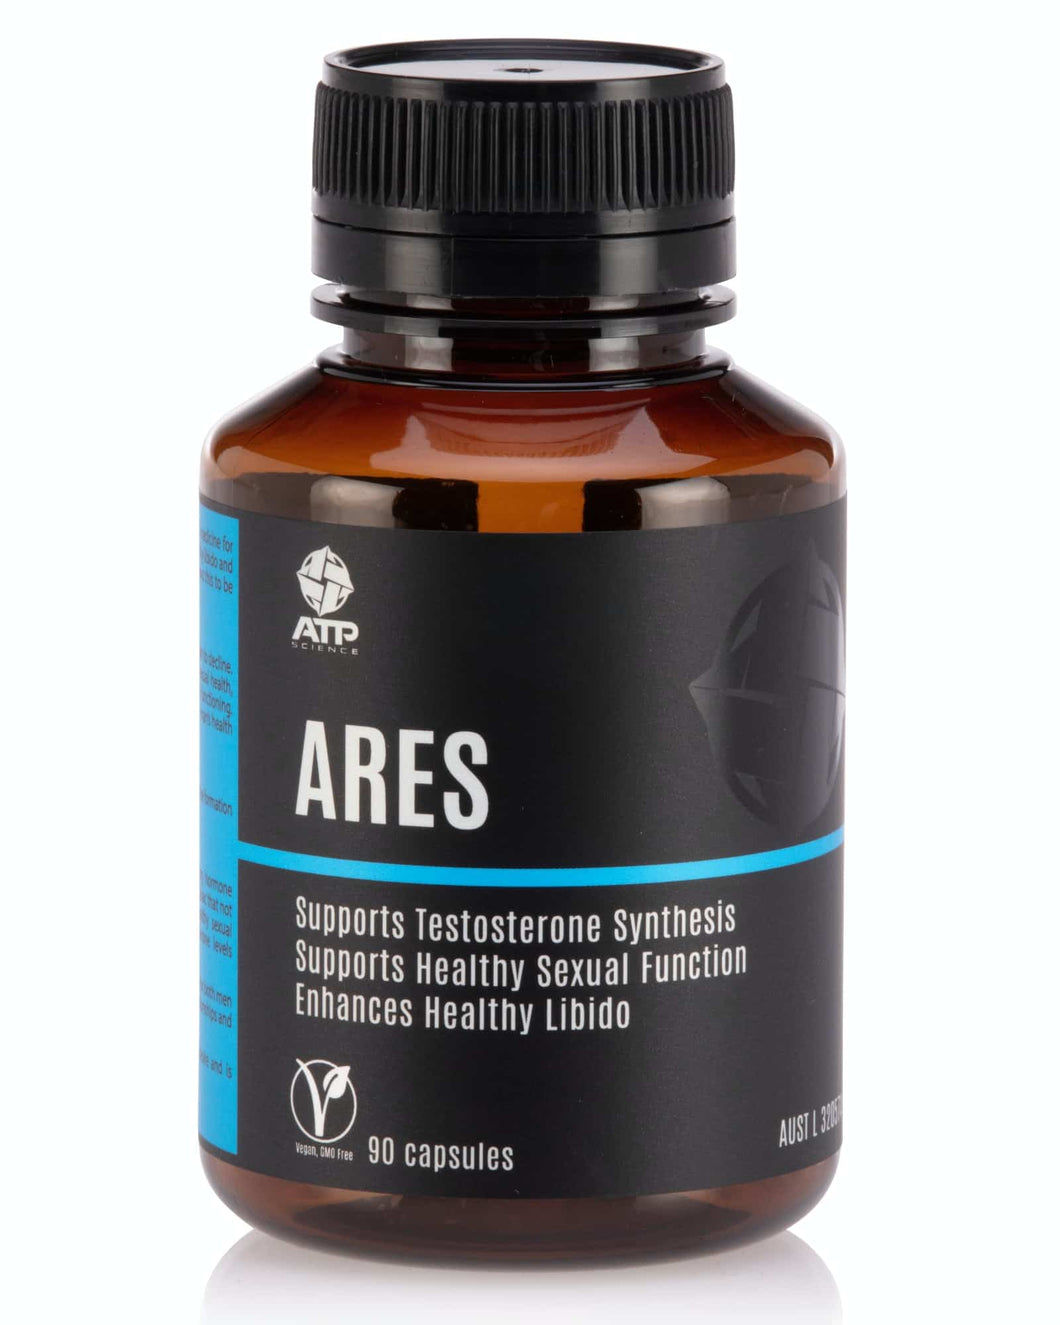 Atp Science Ares - Australian Distributor - Oxygen Nutrition